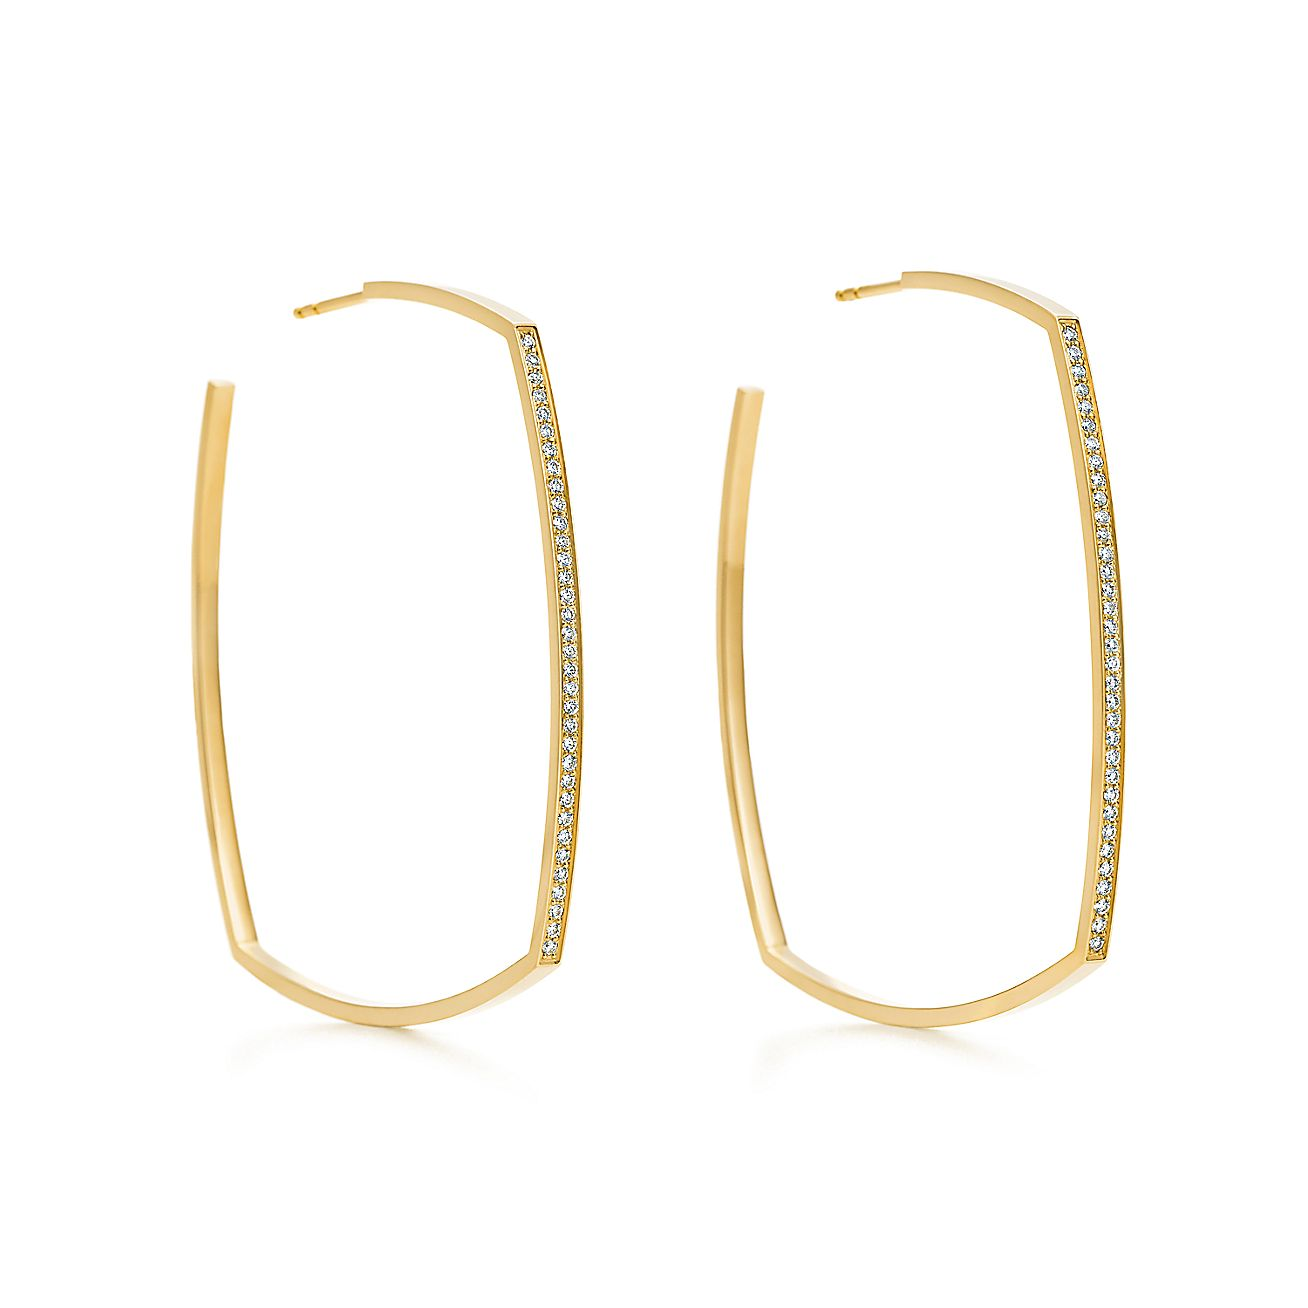 Frank Gehry Torque Micro Hoop Earrings In 18k Gold With